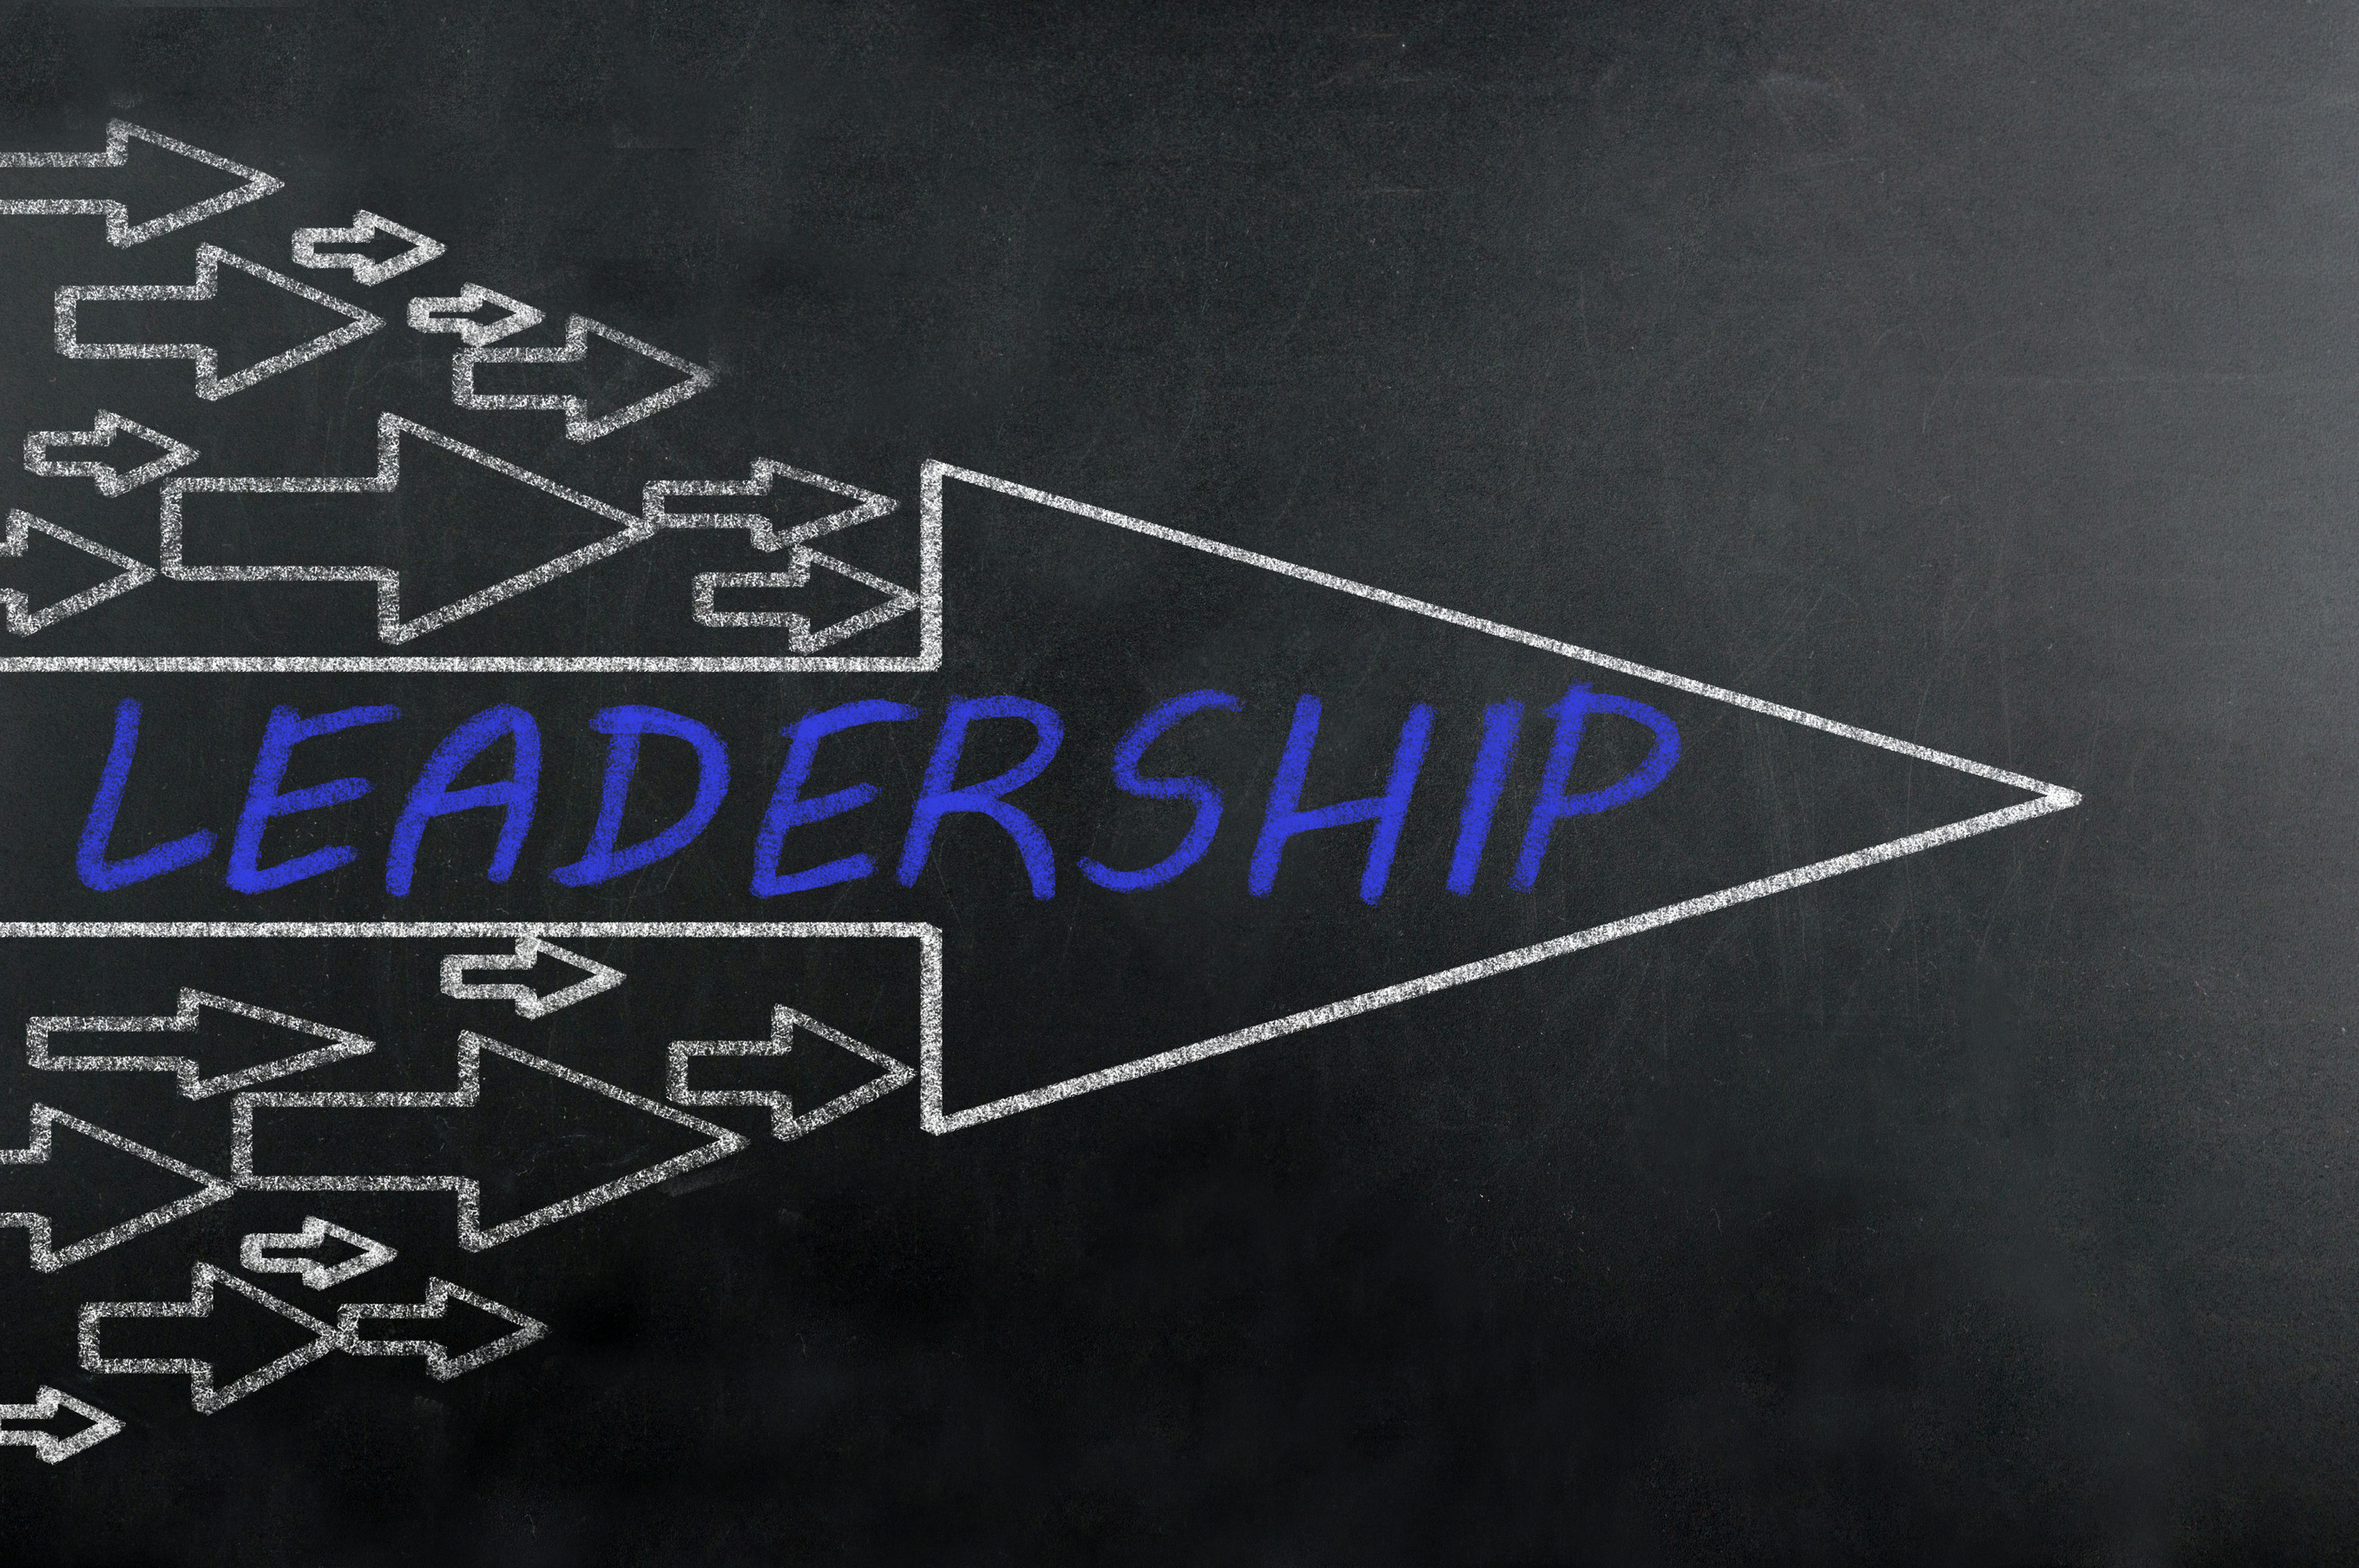 Over managed and under led d chris turner communications organizations need both simply defining leadership seems a challenge websters dictionary defines leadership as the action of leading a group of ccuart Images